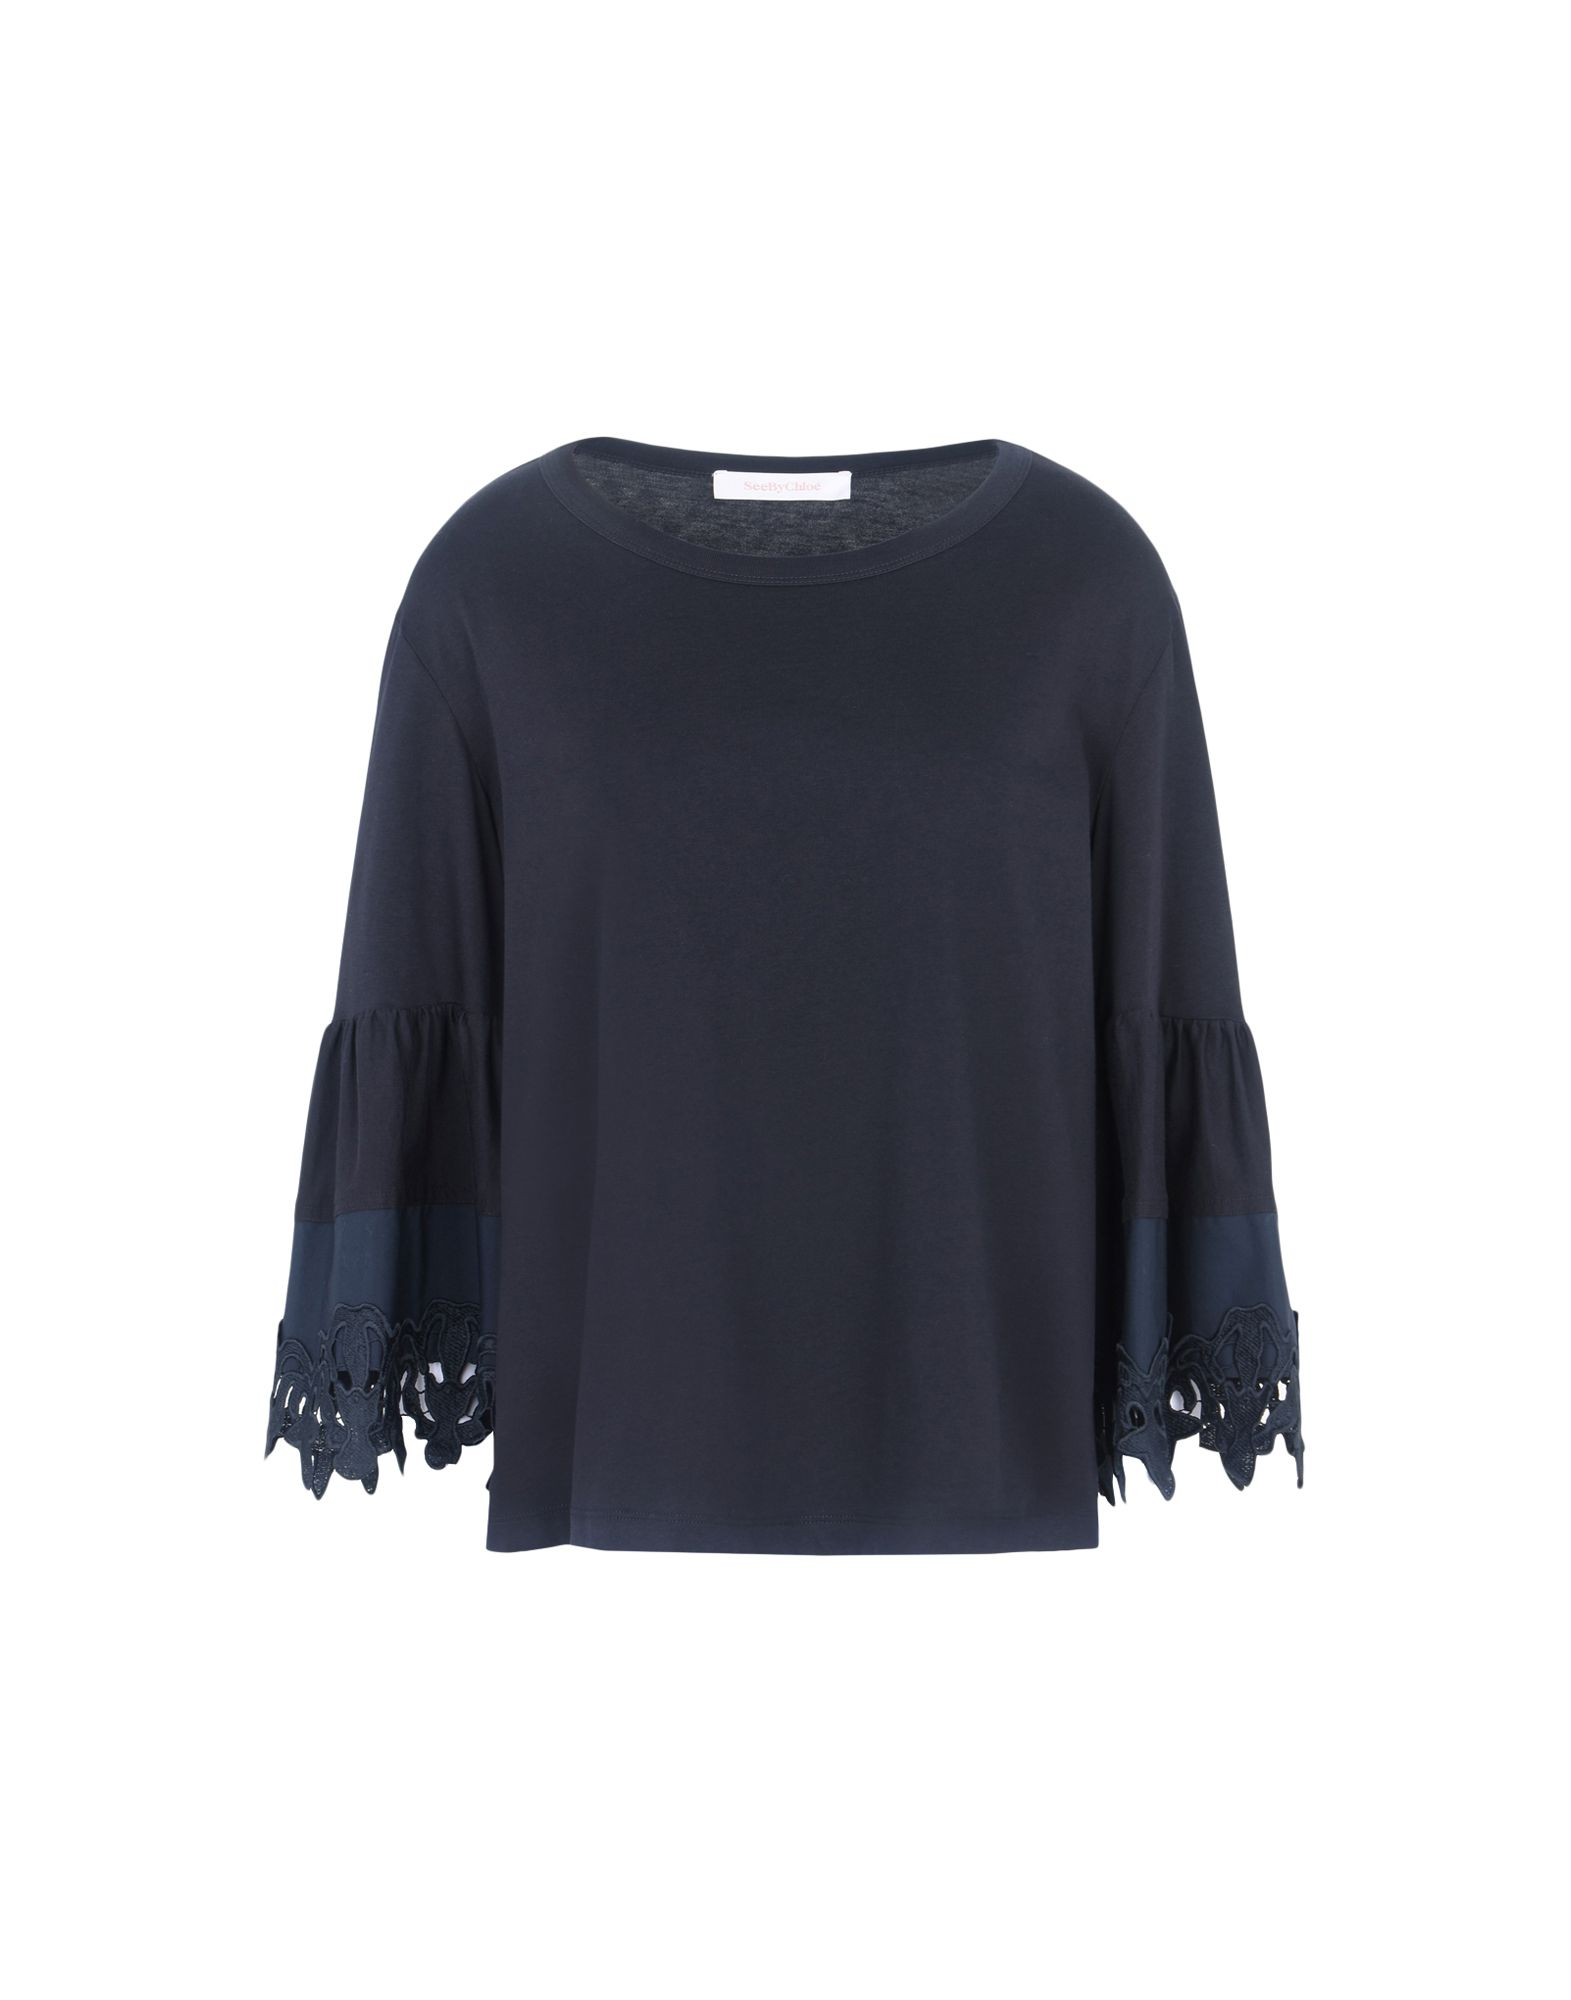 T-Shirt See By Chloé donna donna - 12116577VE